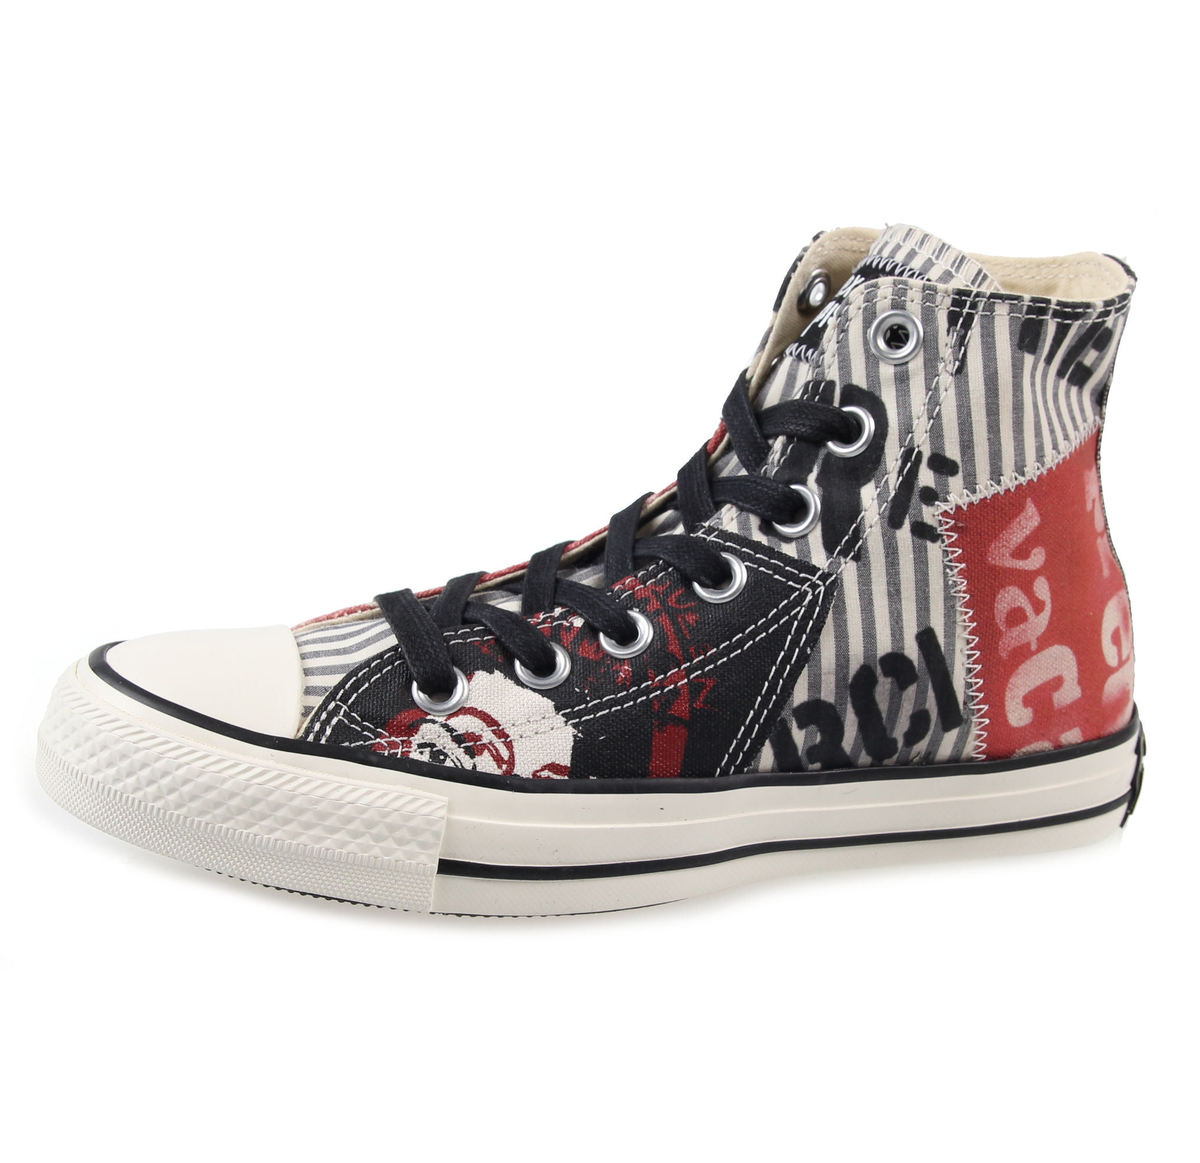 boty CONVERSE - Sex Pistols - Chuck Taylor All Star - C151193